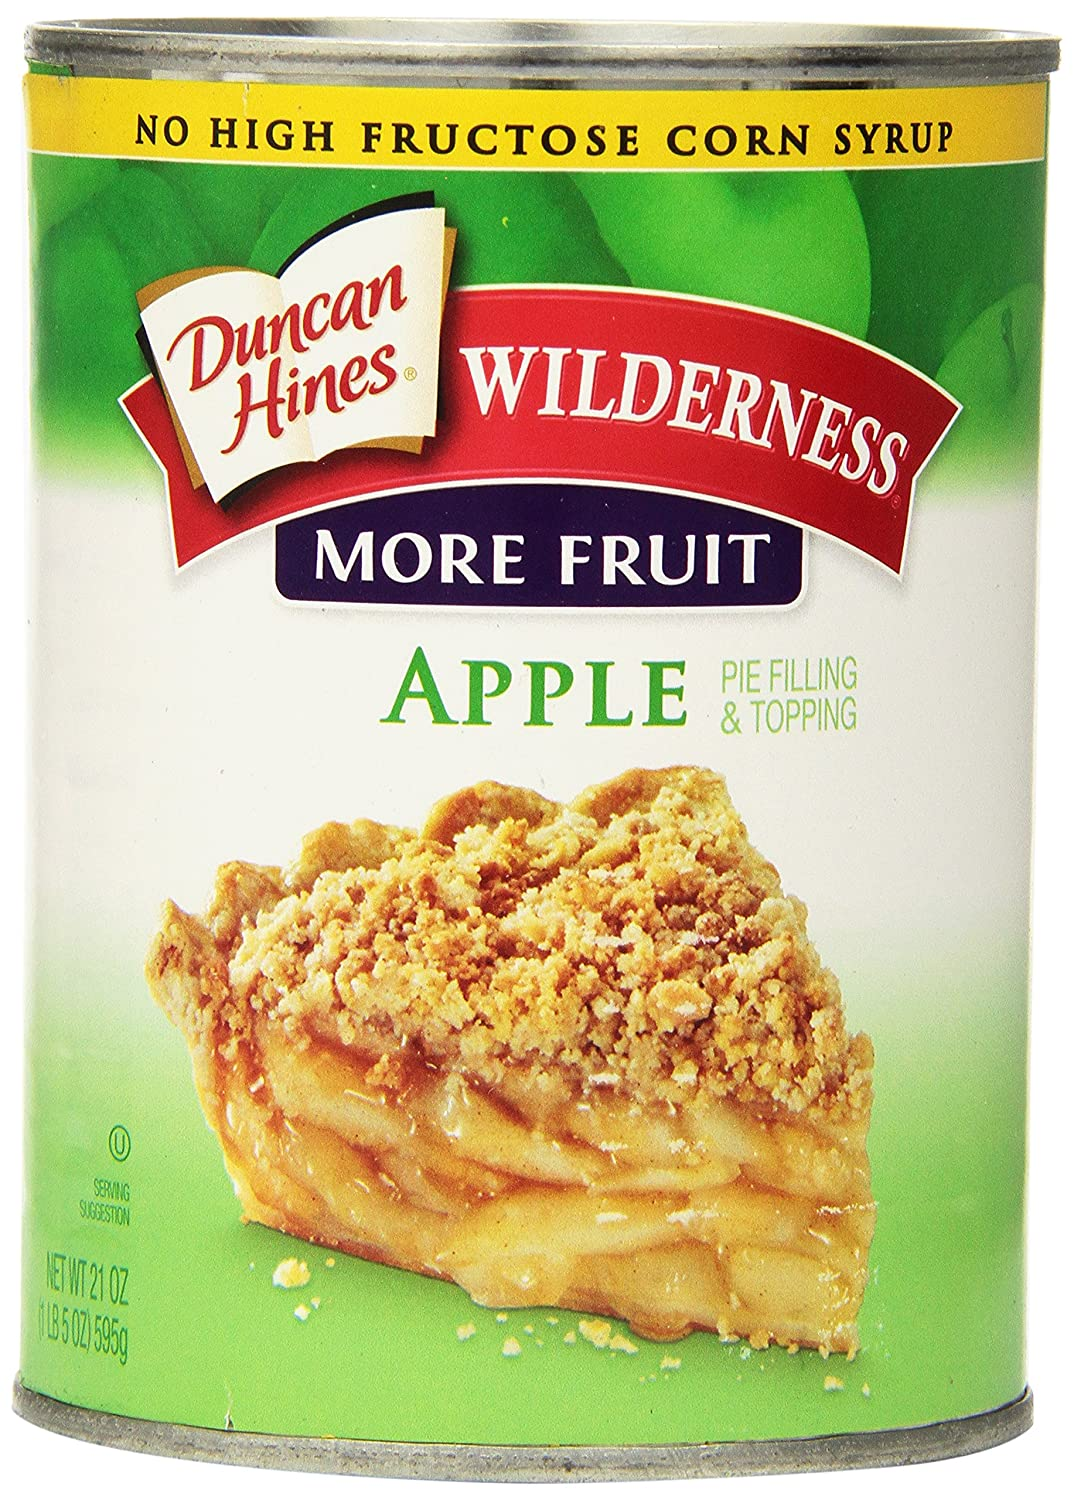 Amazon.com : Wilderness More Fruit Pie Filling & Topping, Apple, 21 Ounce (Pack of 12) : Grocery & Gourmet Food